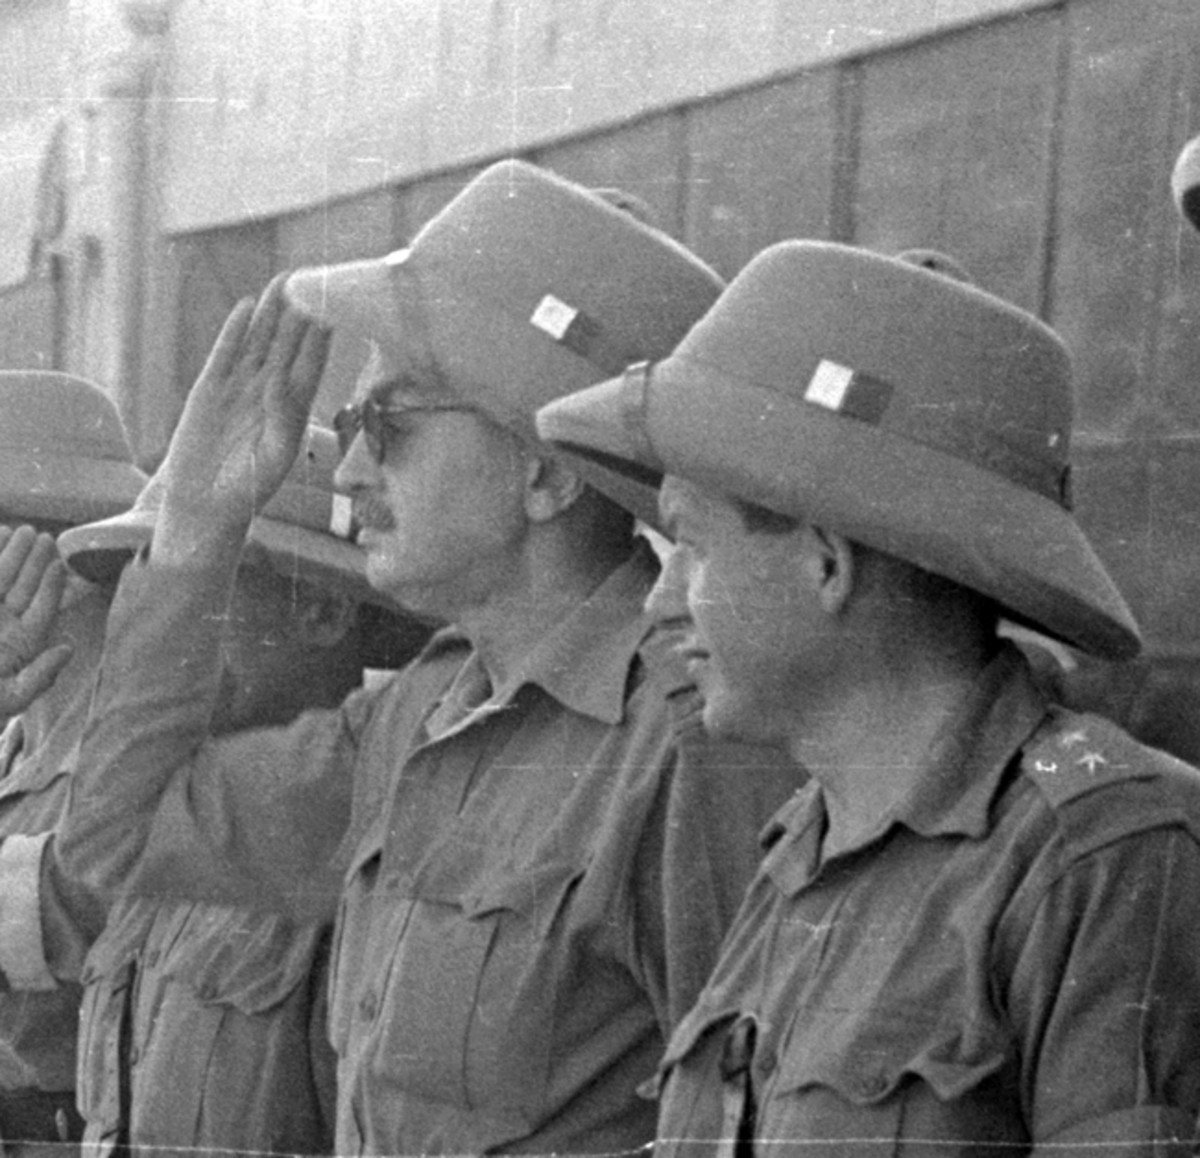 A close up of the Polish soldiers shows that the KSP hat was worn with a small white/red flash, denoting that these are in fact Polish soldiers. Polish Archives